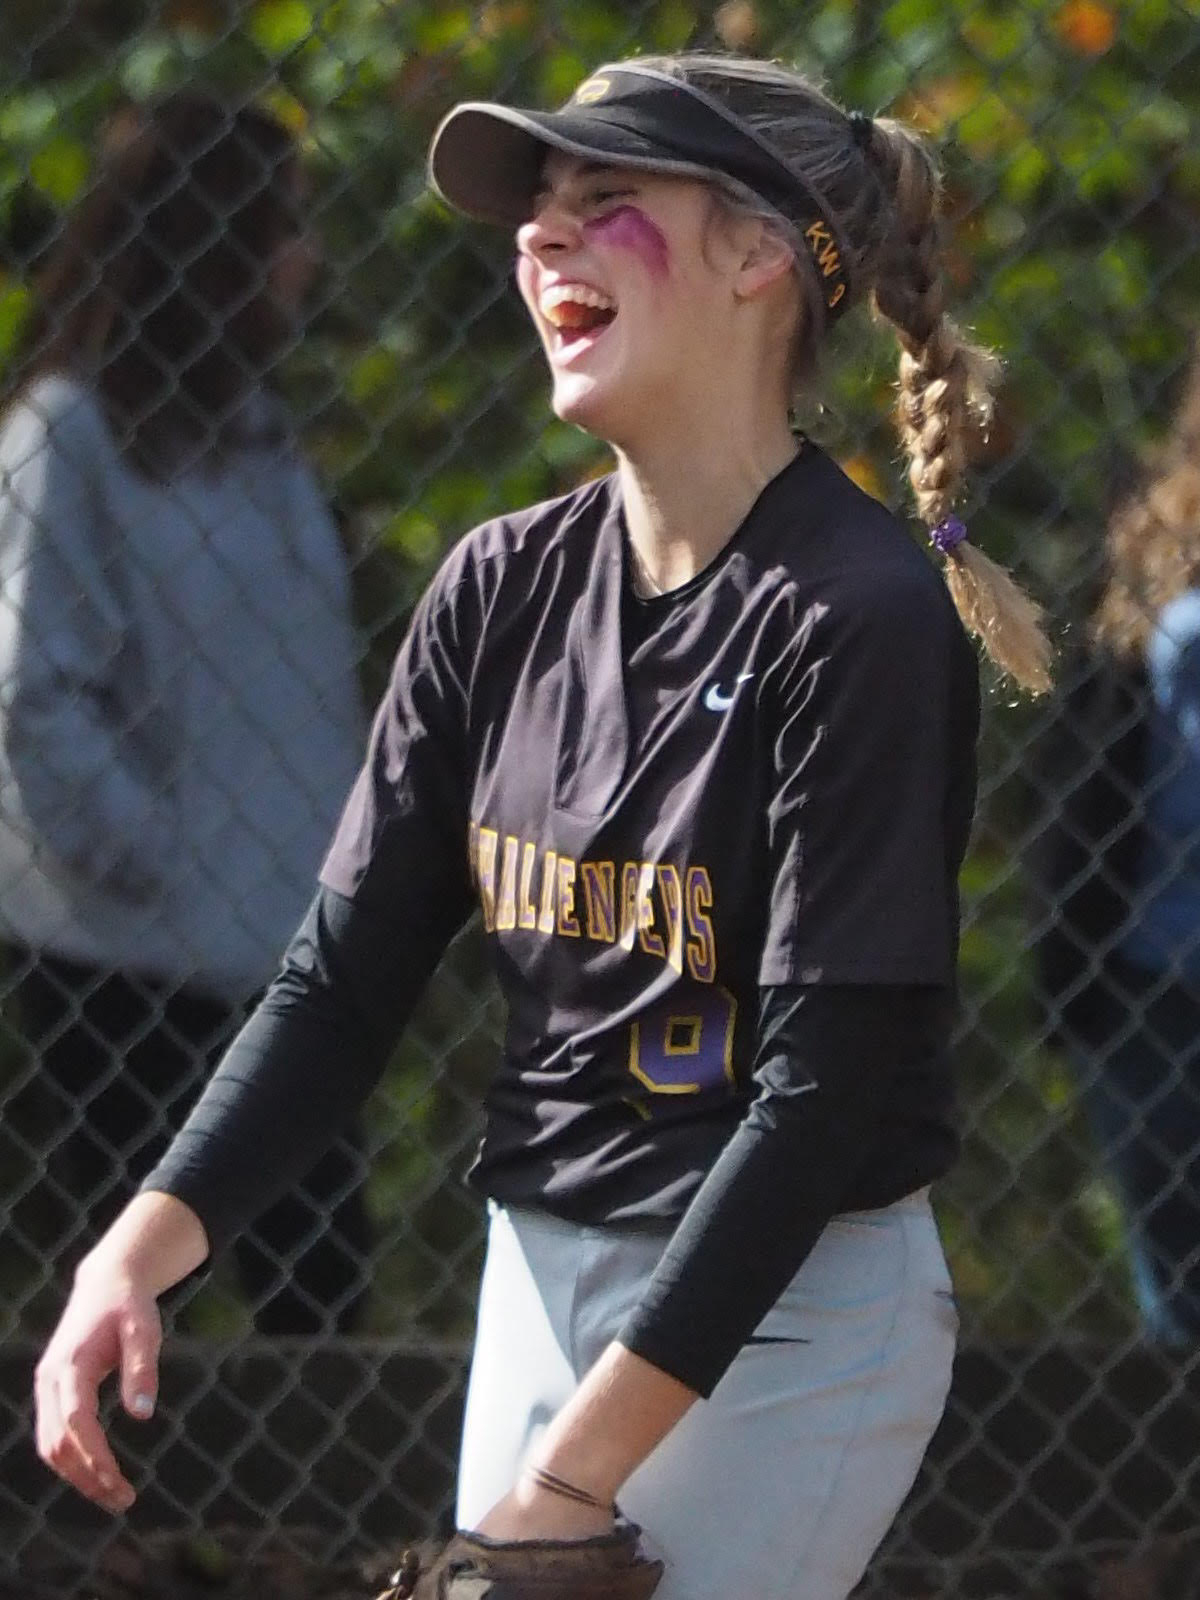 Softball: Challengers Roll In 10-1 Romp